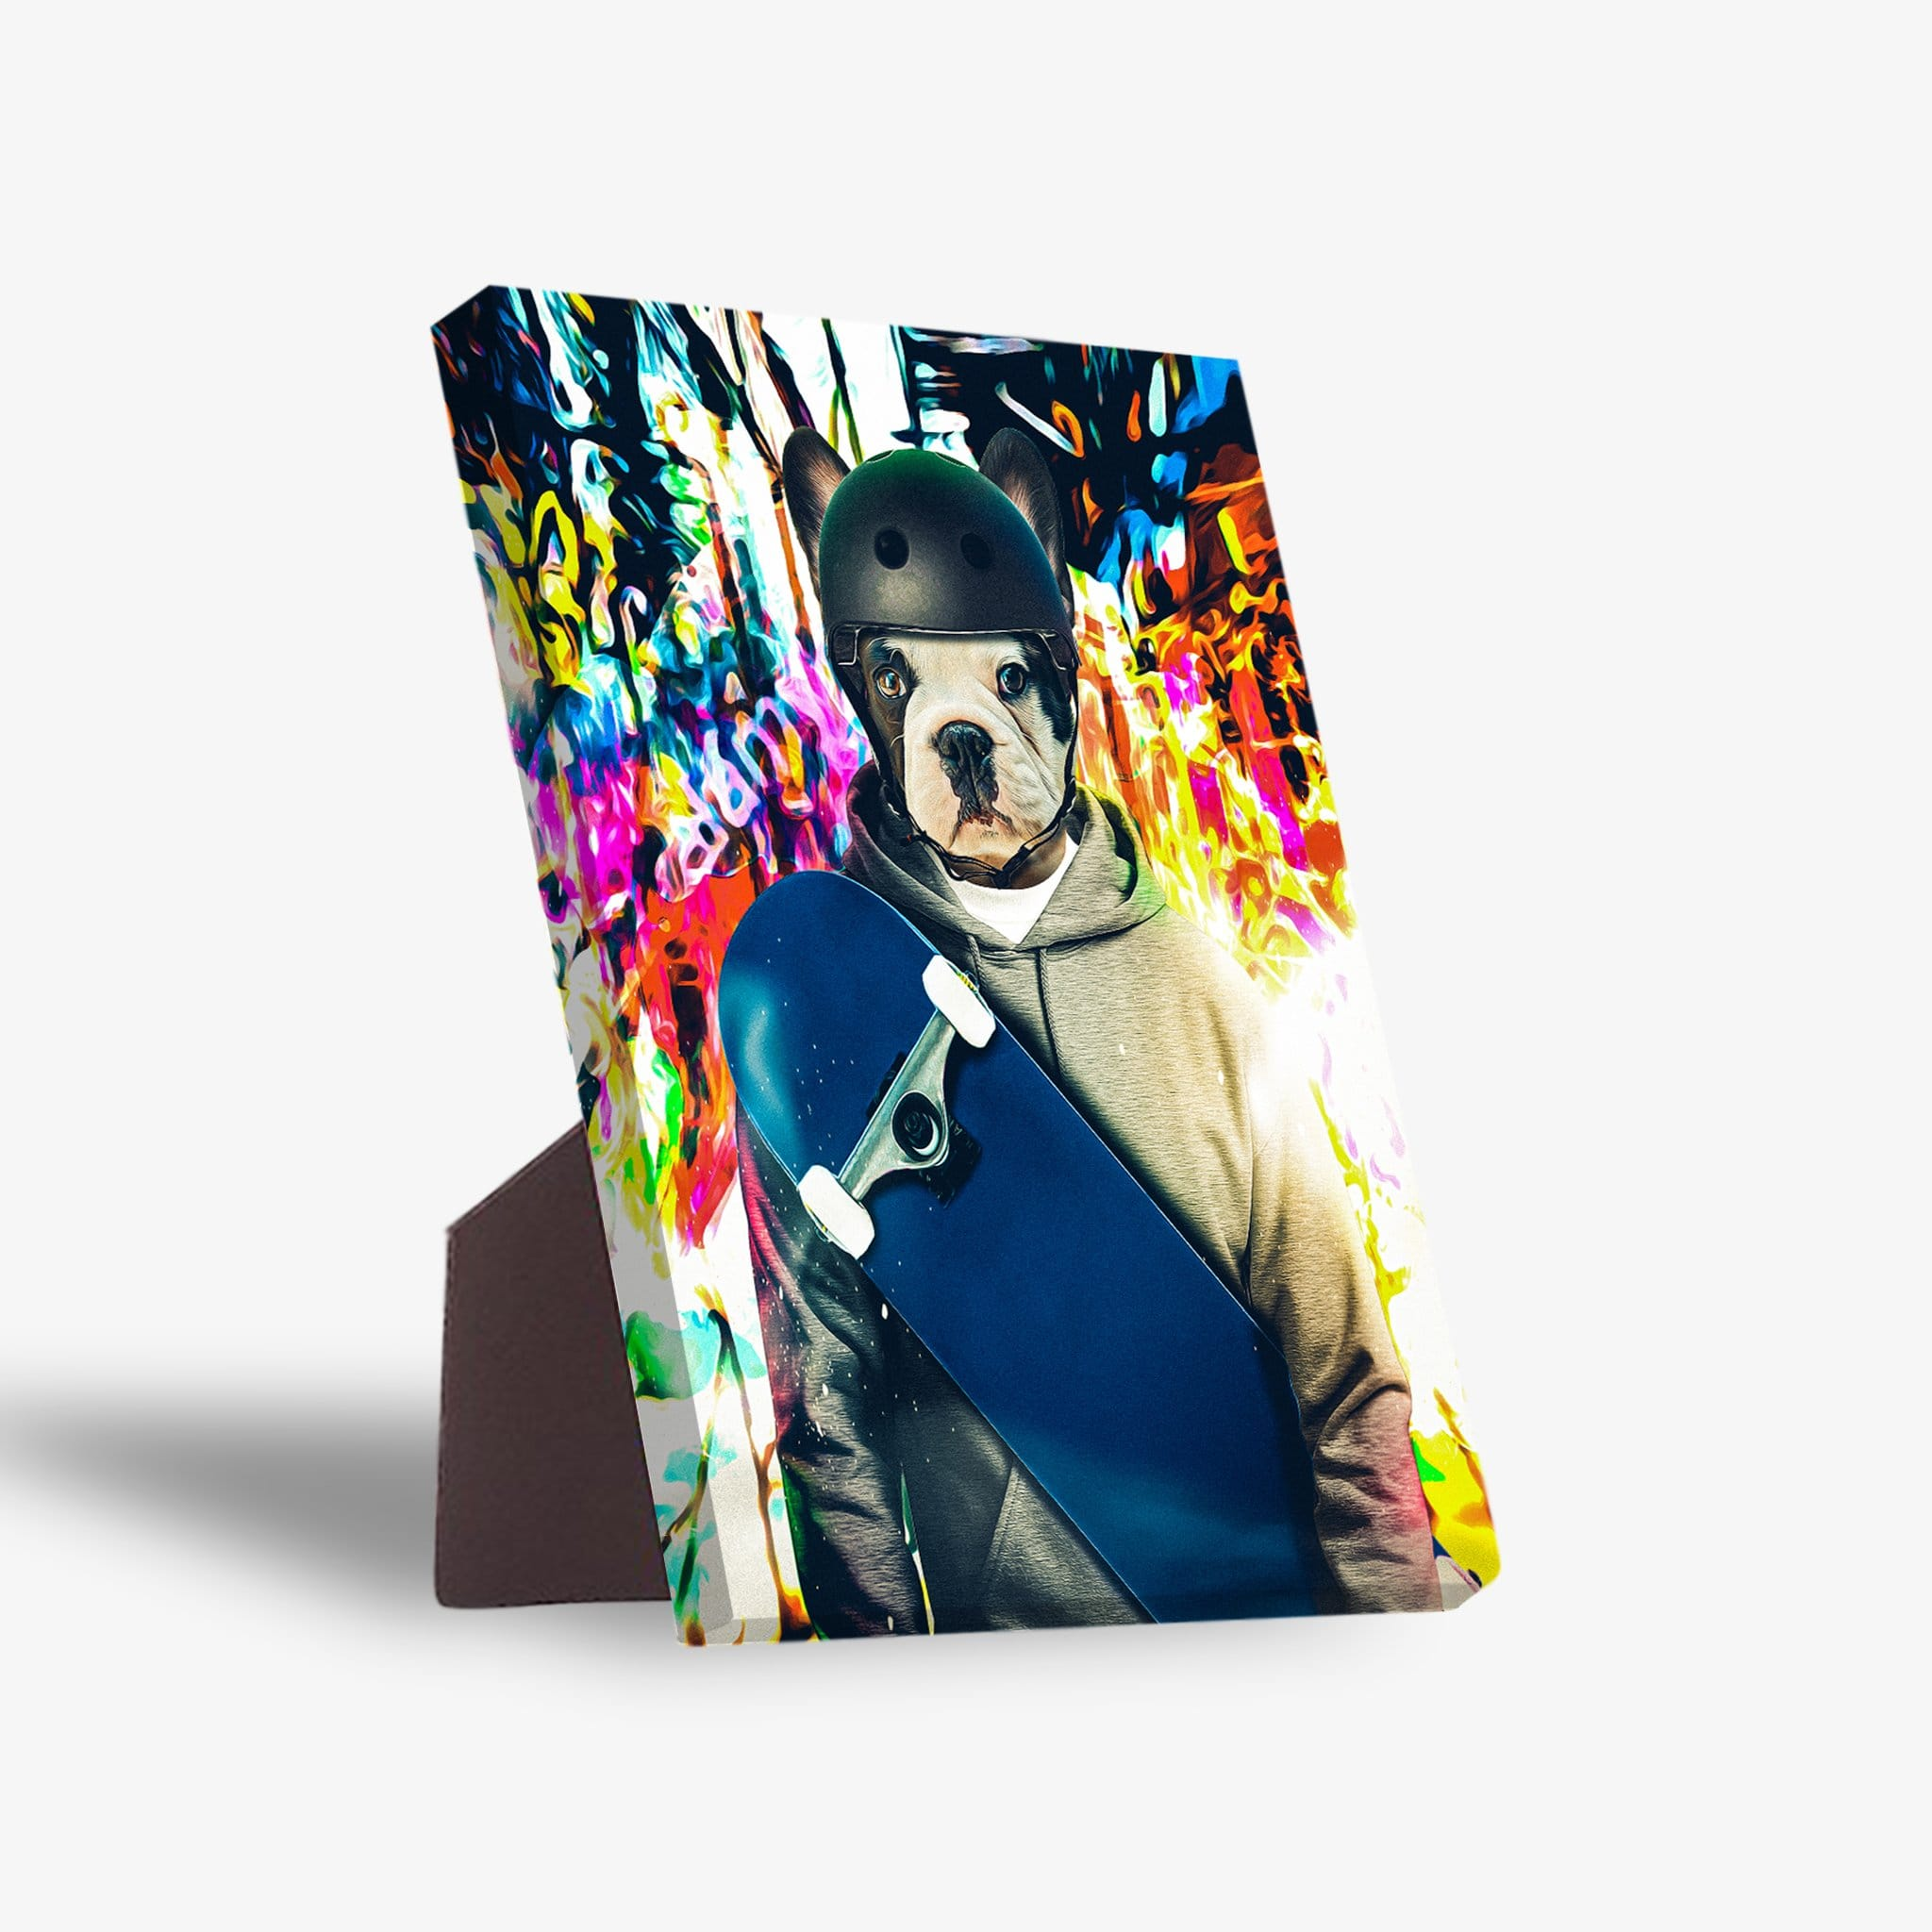 'The Skateboarder' Personalized Pet Standing Canvas